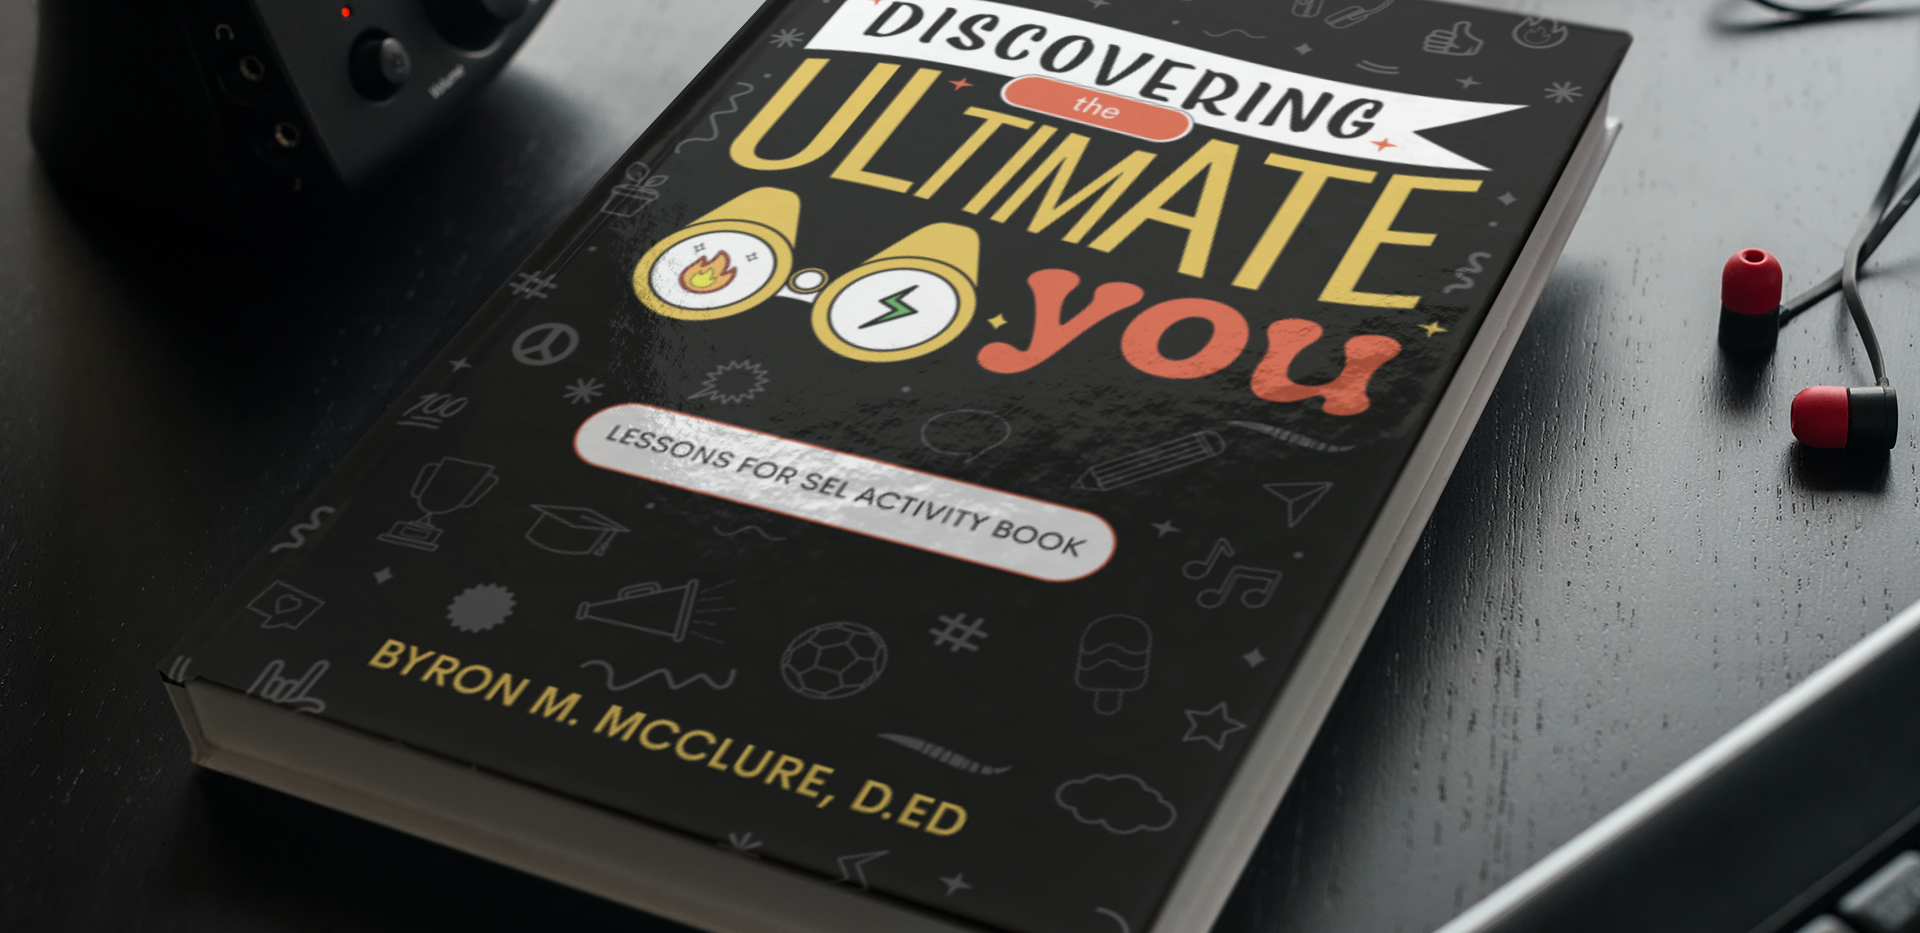 mockup-of-a-hard-cover-book-on-a-table-w